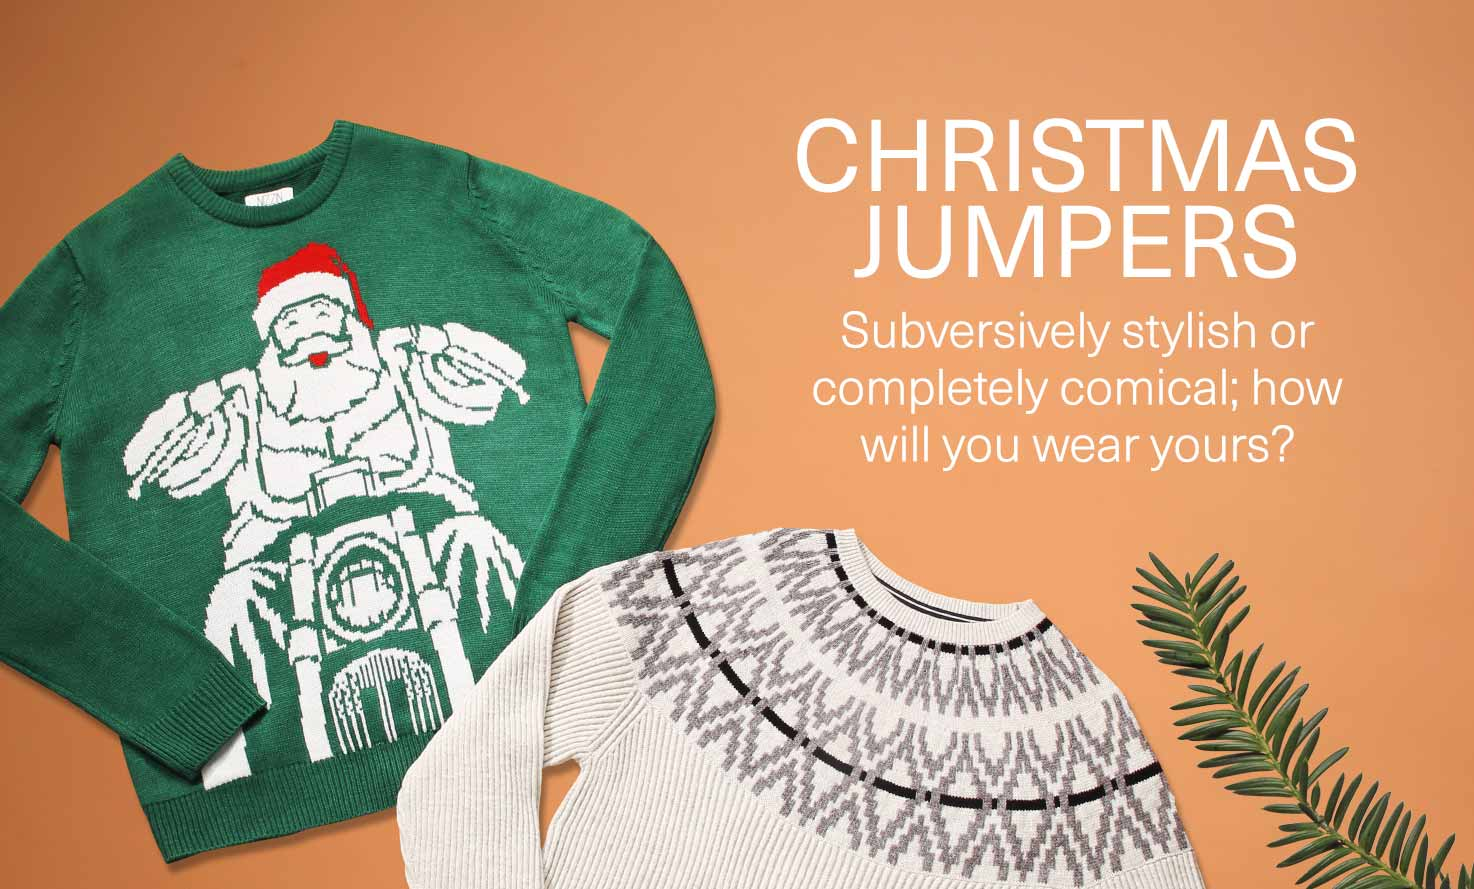 Christmas jumpers: Subversively stylish or completely comical; how will you wear yours?